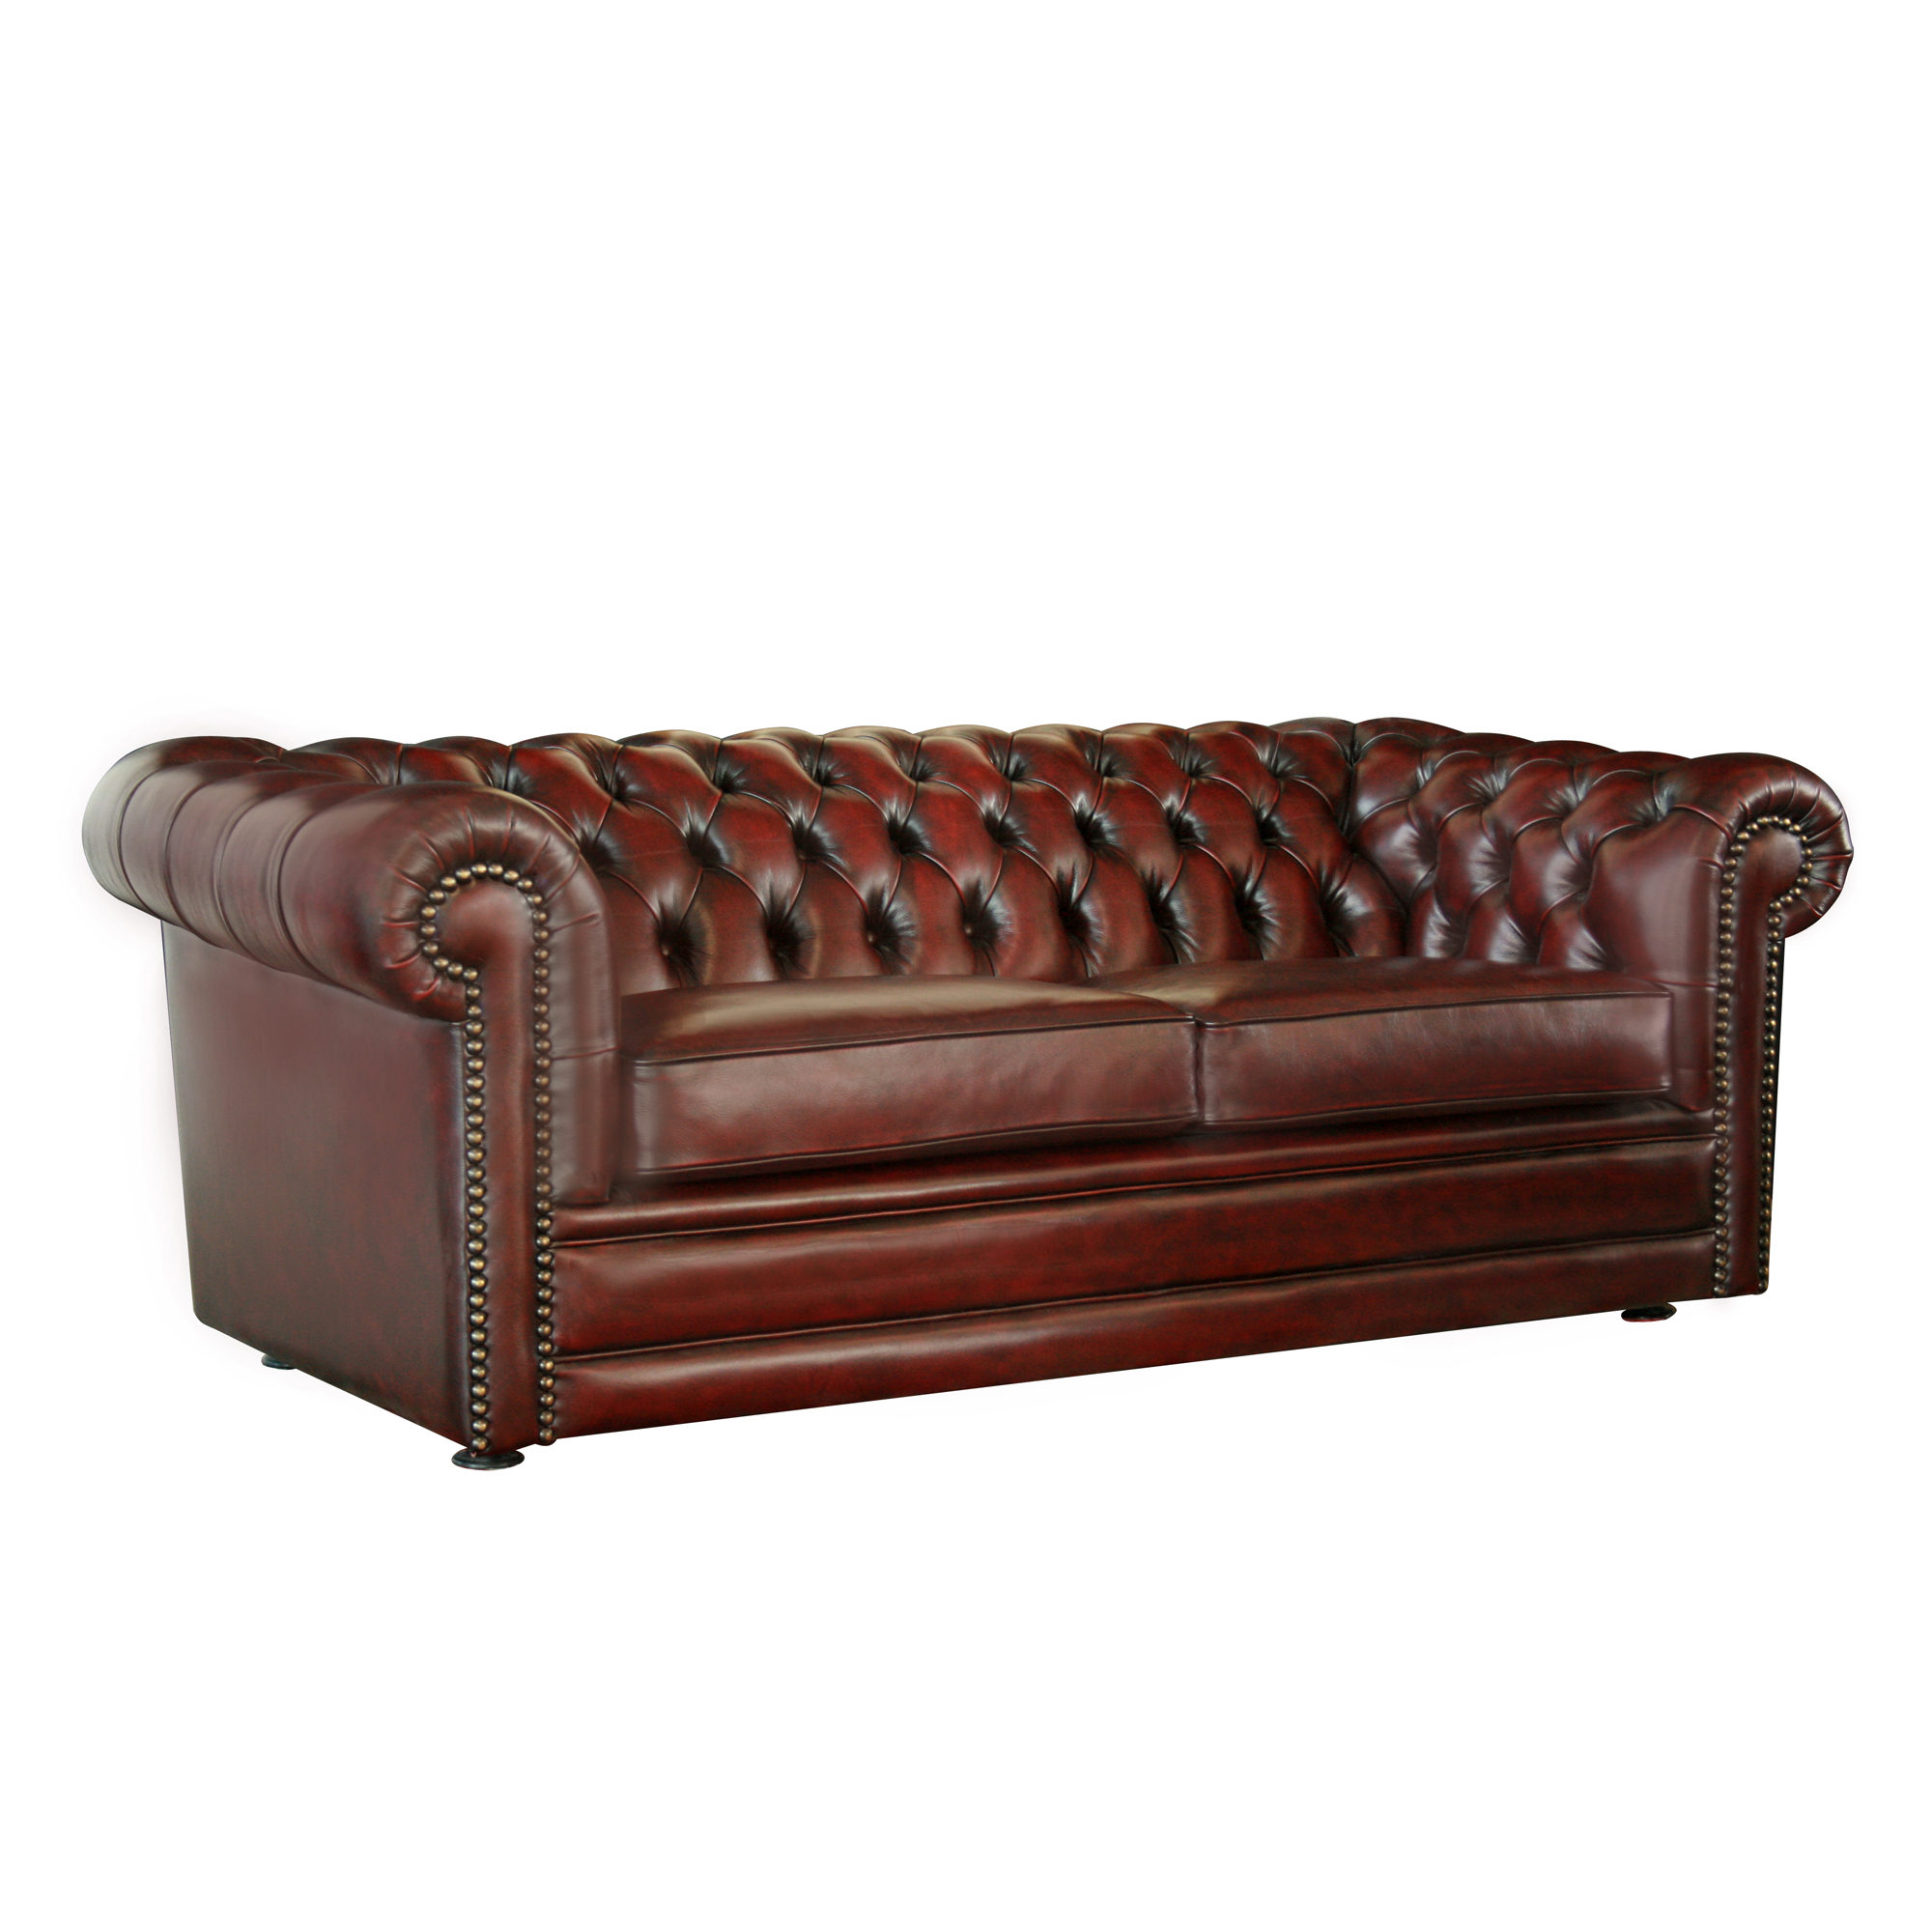 sofa gallery pty ltd rug to match black leather the club brokeasshome